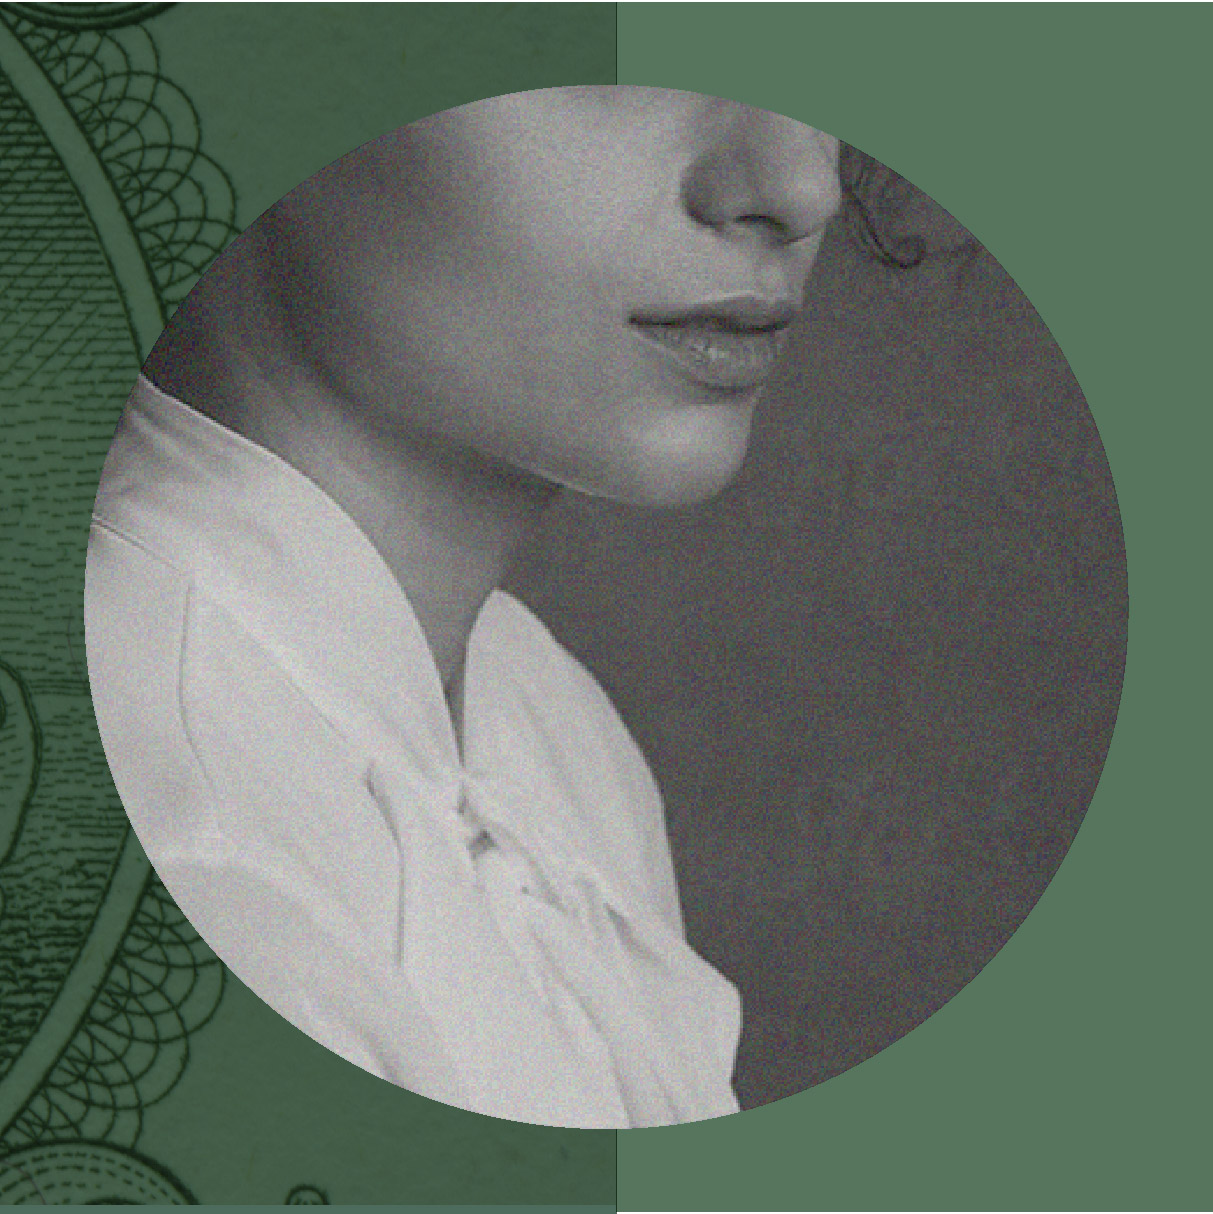 A collage with a woman's face in a circle on a green background with an image of money.